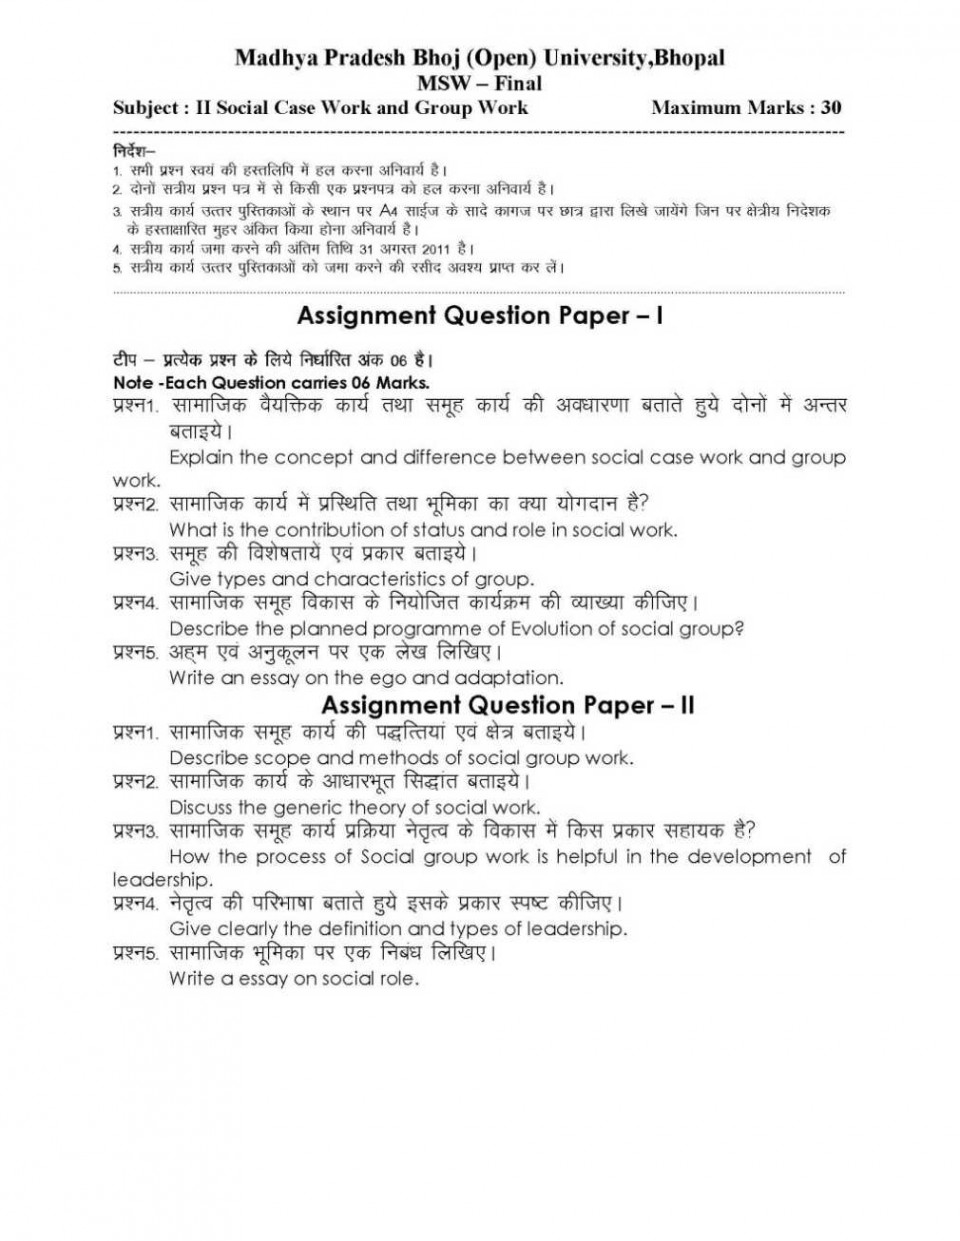 012 Bhoj University Bhopal Msw Definition Essays Surprising Essay Examples Family Heroism Pdf 960